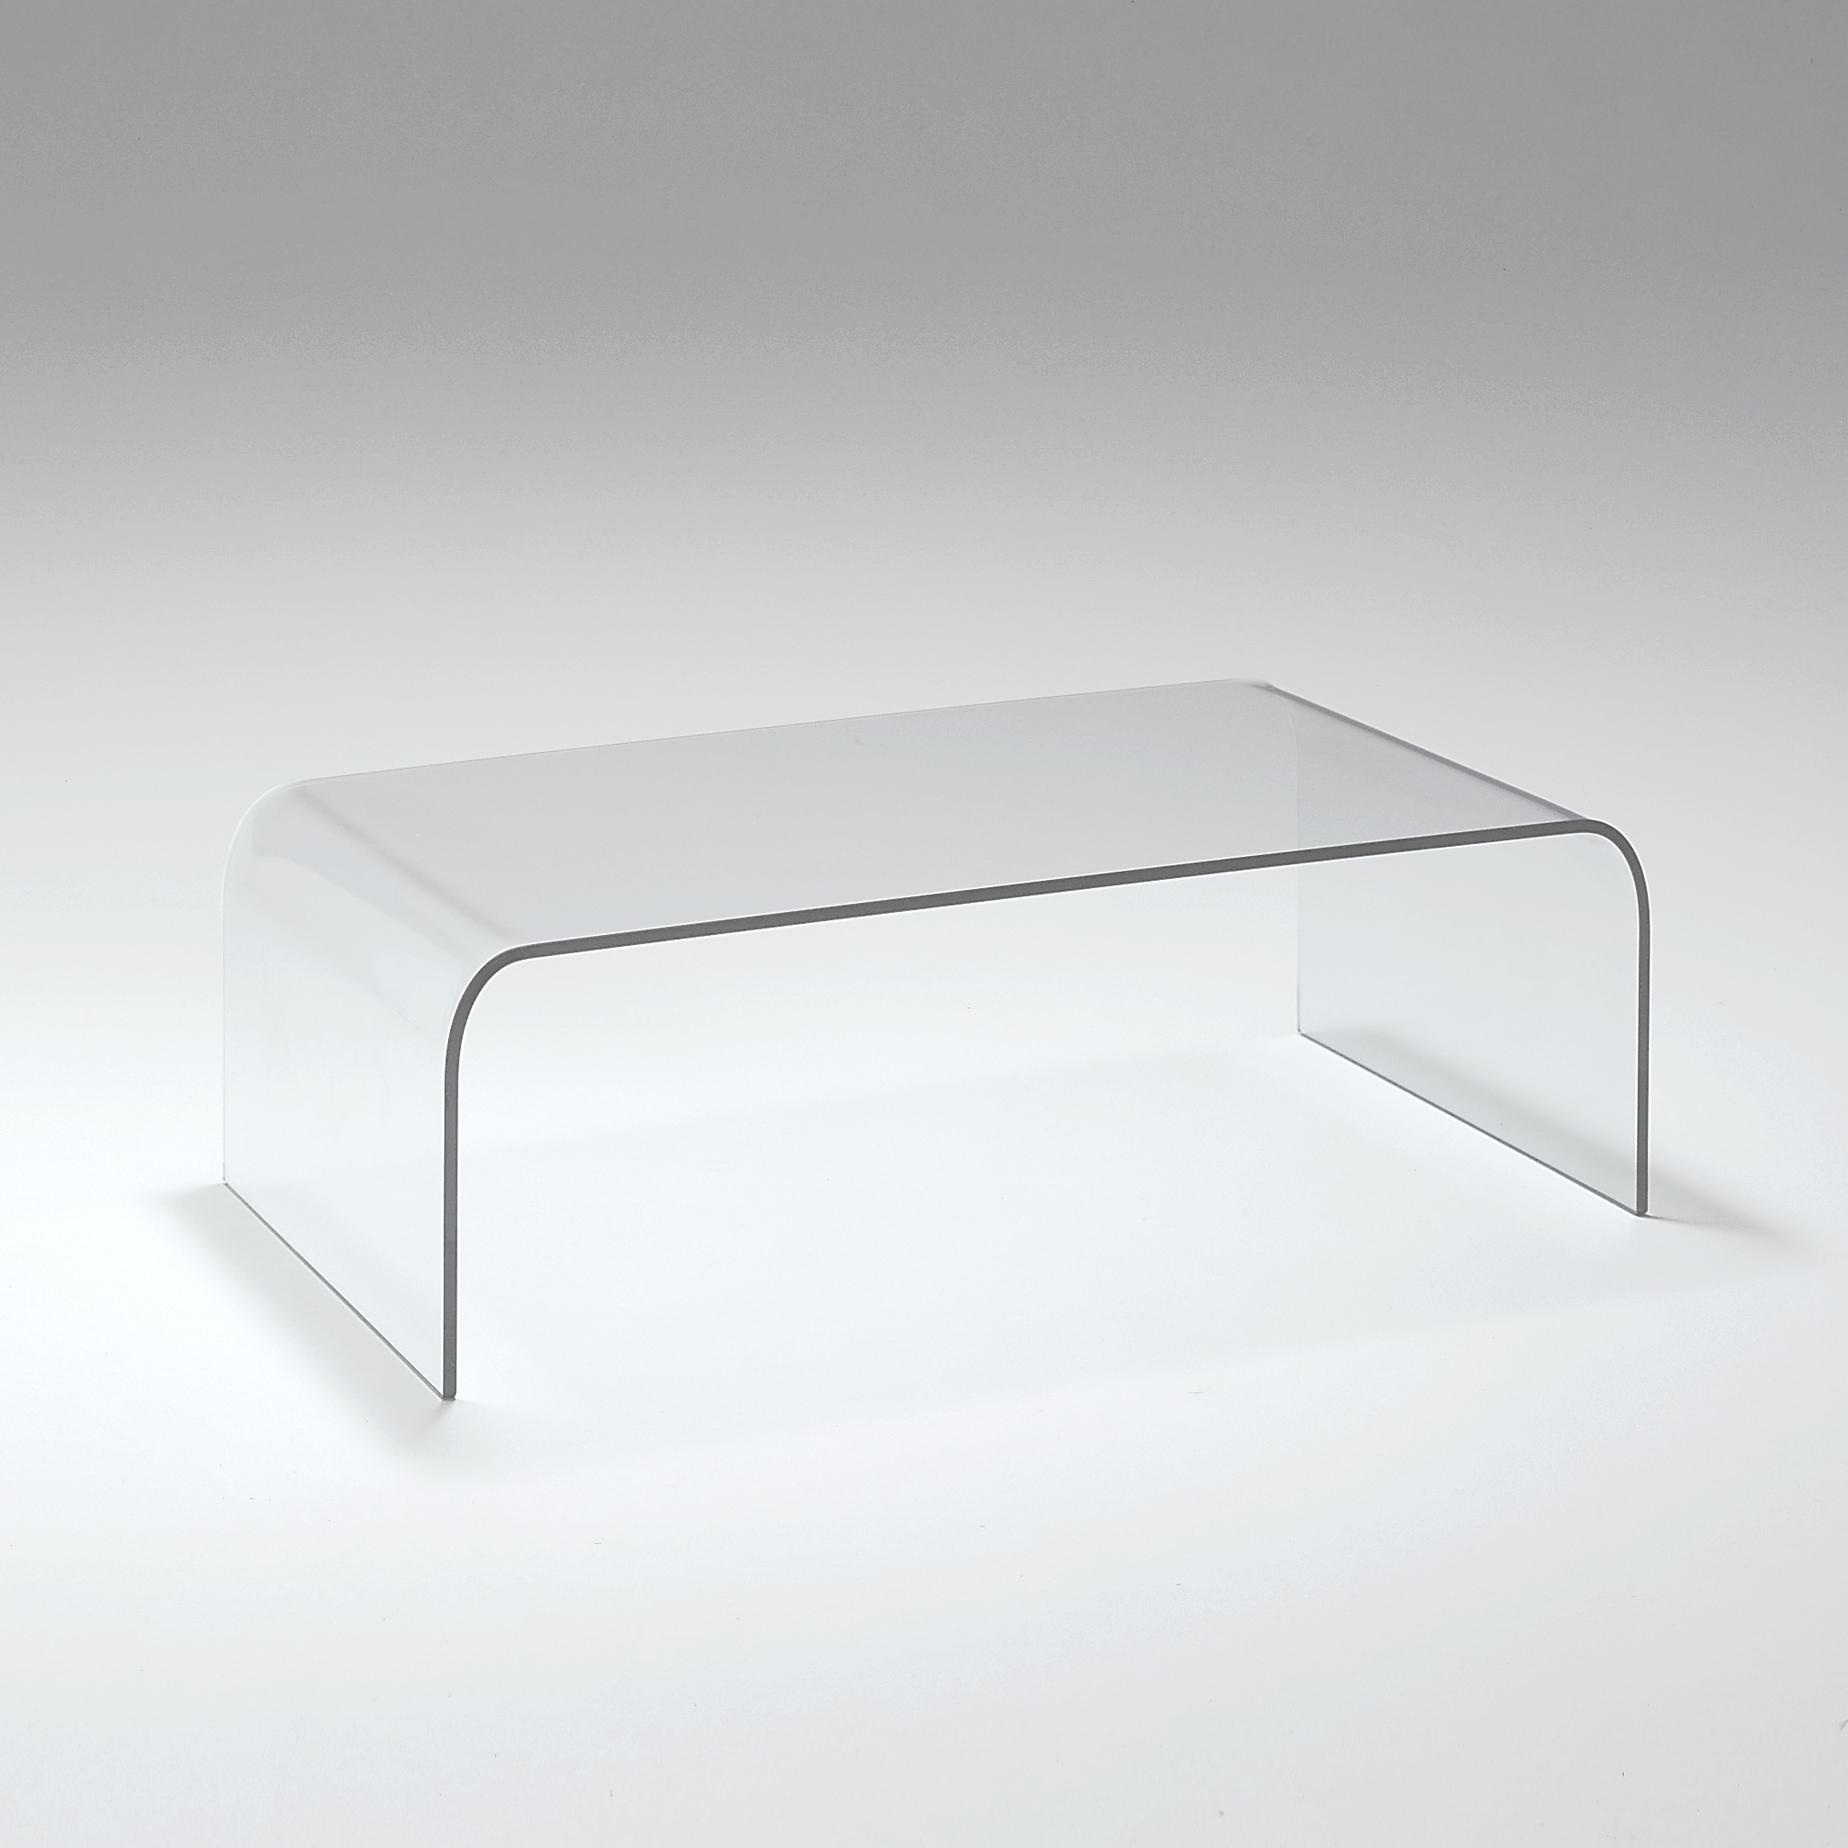 pont occasional tables from designer ligne roset official site. Black Bedroom Furniture Sets. Home Design Ideas